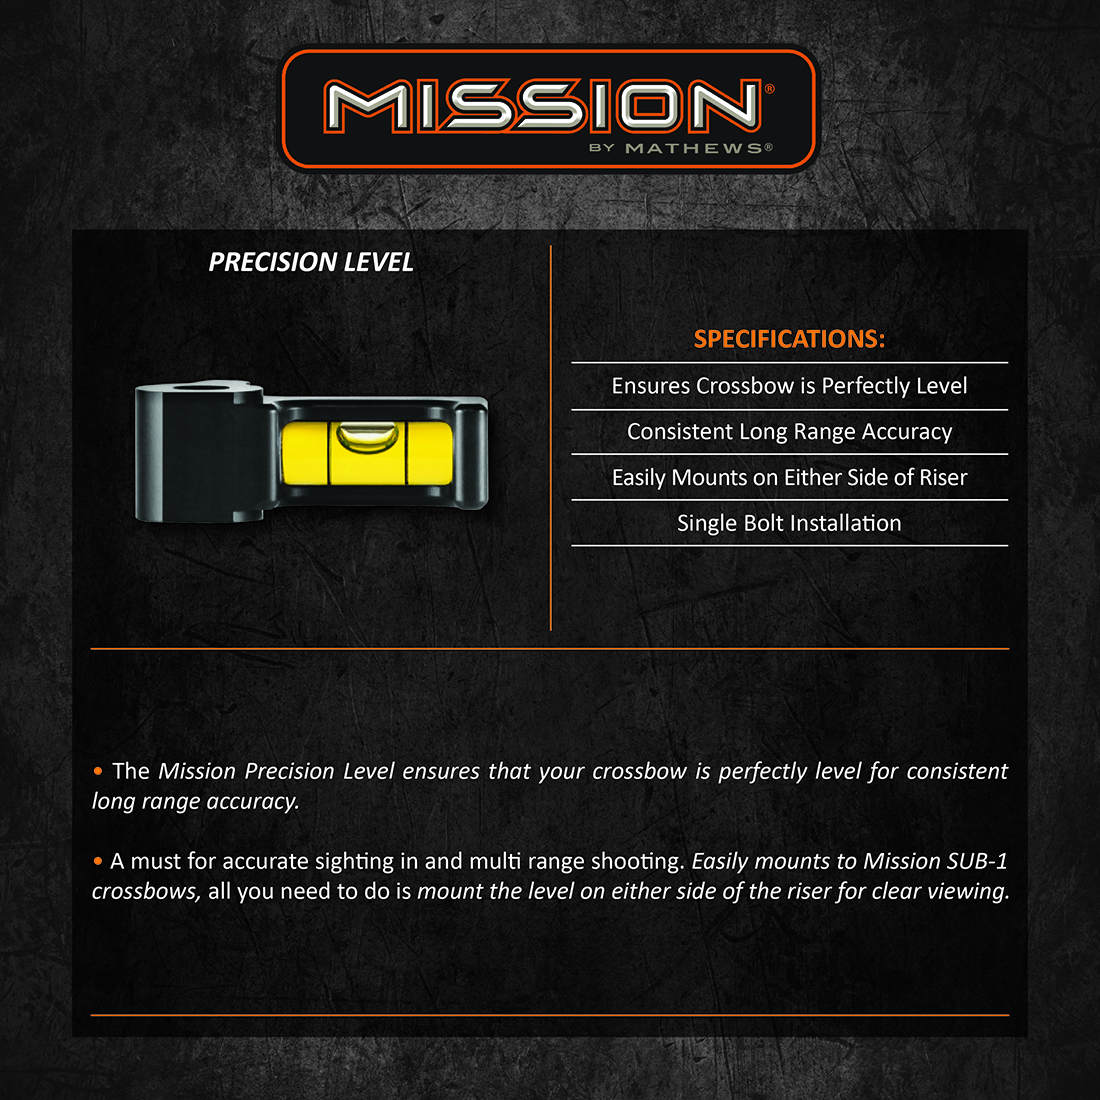 Mission_Precision_Level_Product_Description